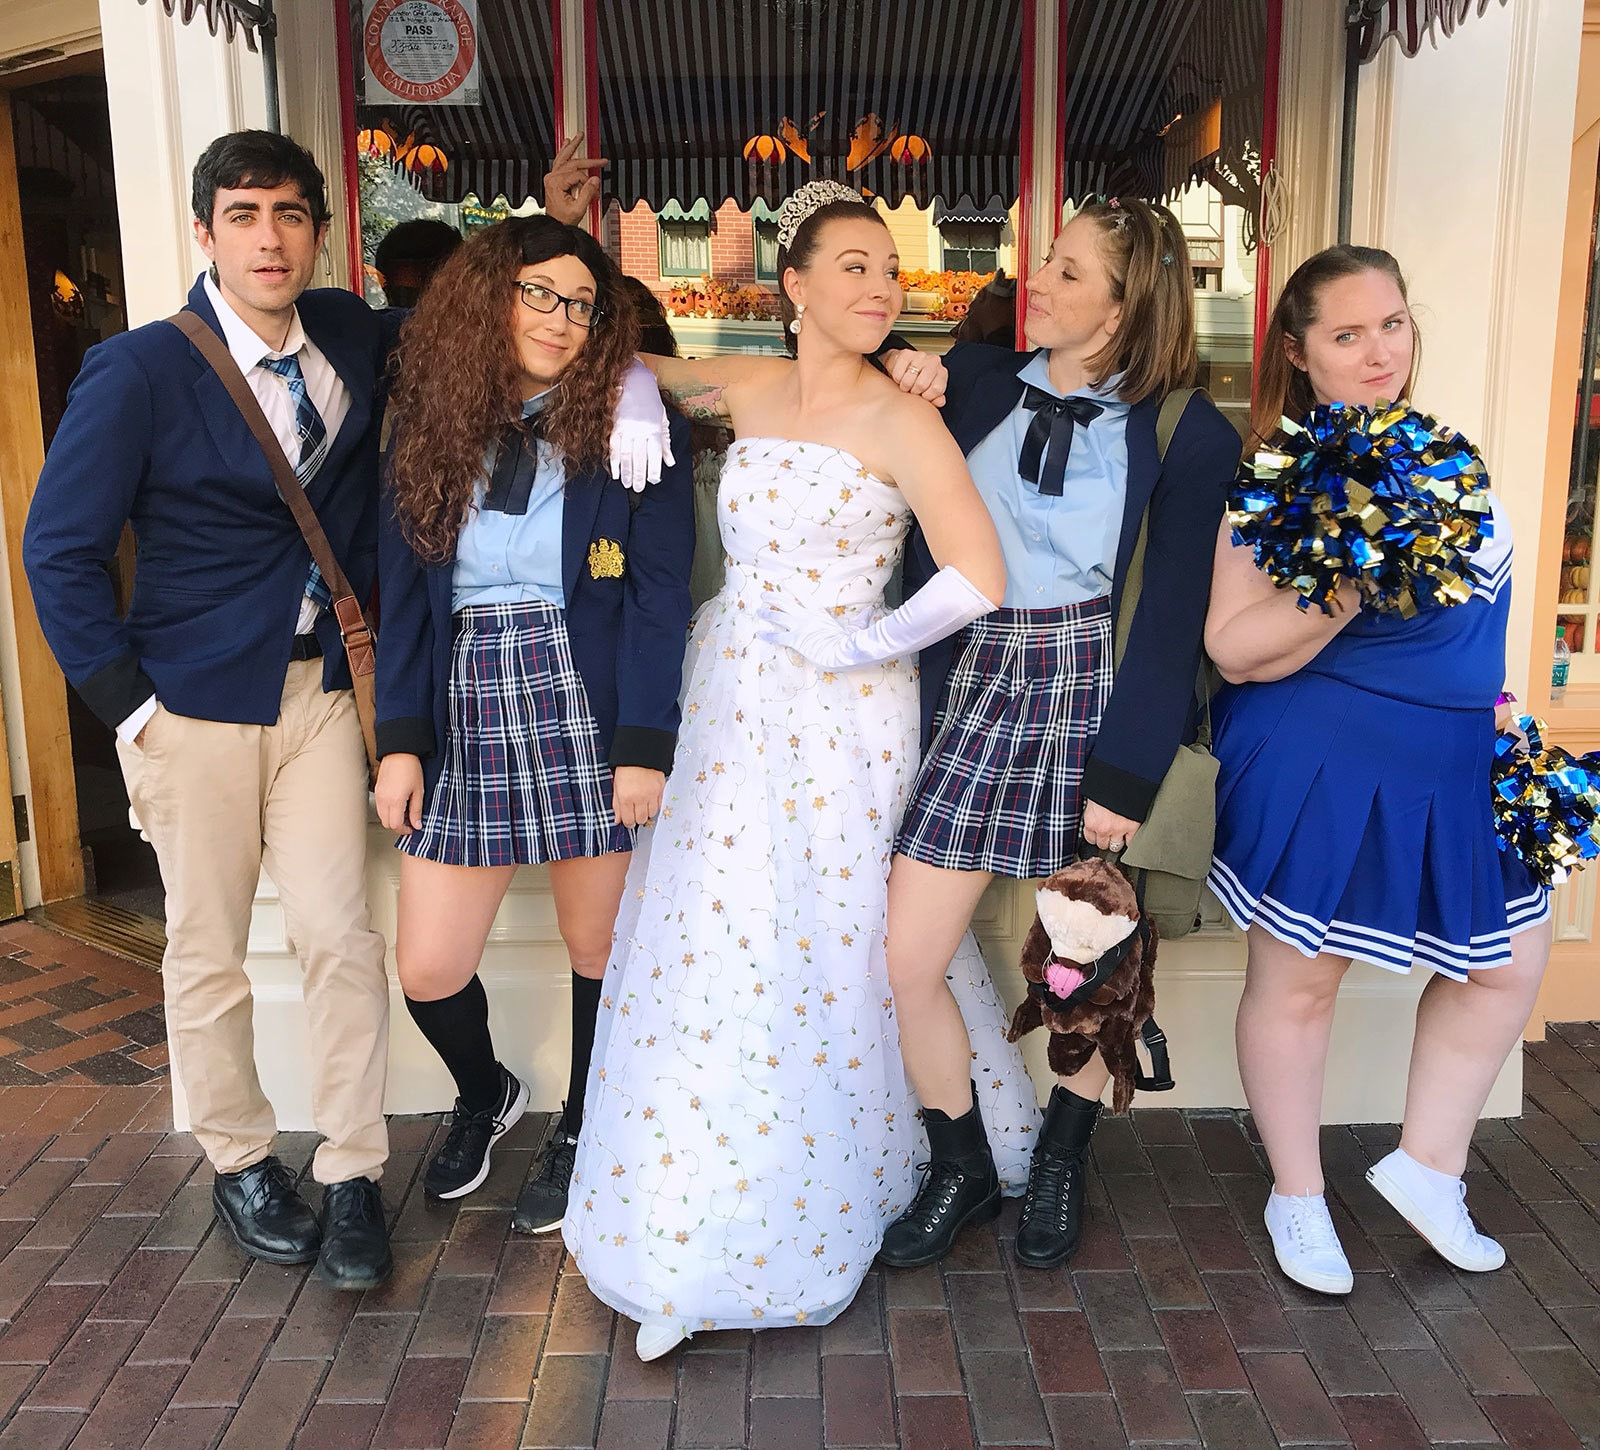 Princess of Genovia and friends dressed up as Princess Diaries characters